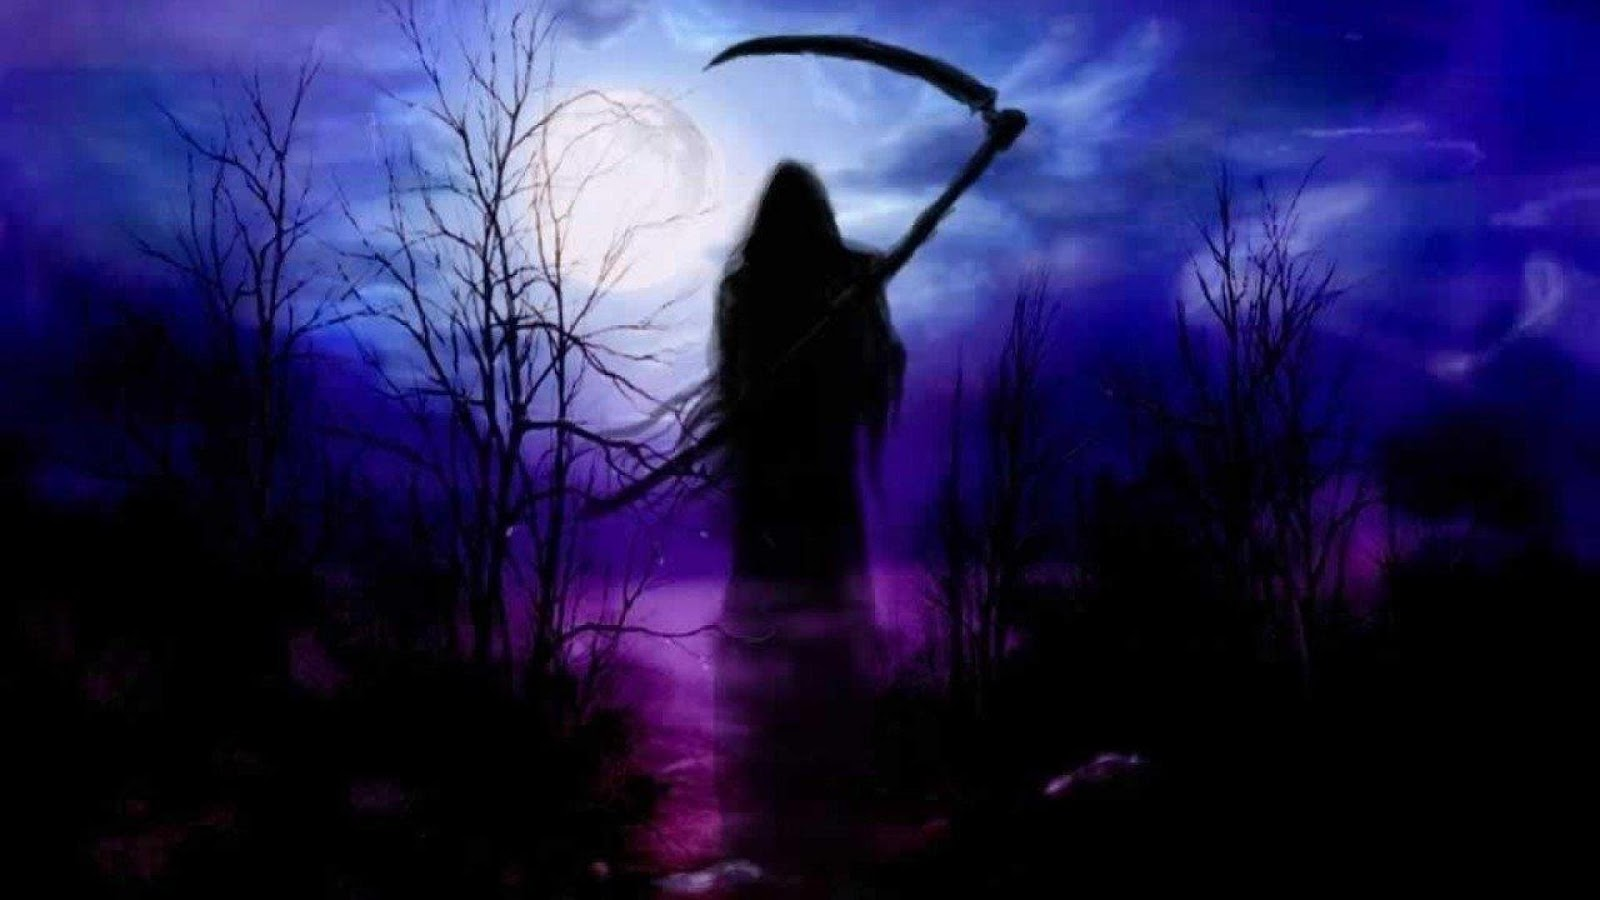 Grim Reaper Live Wallpaper Android Apps on Google Play